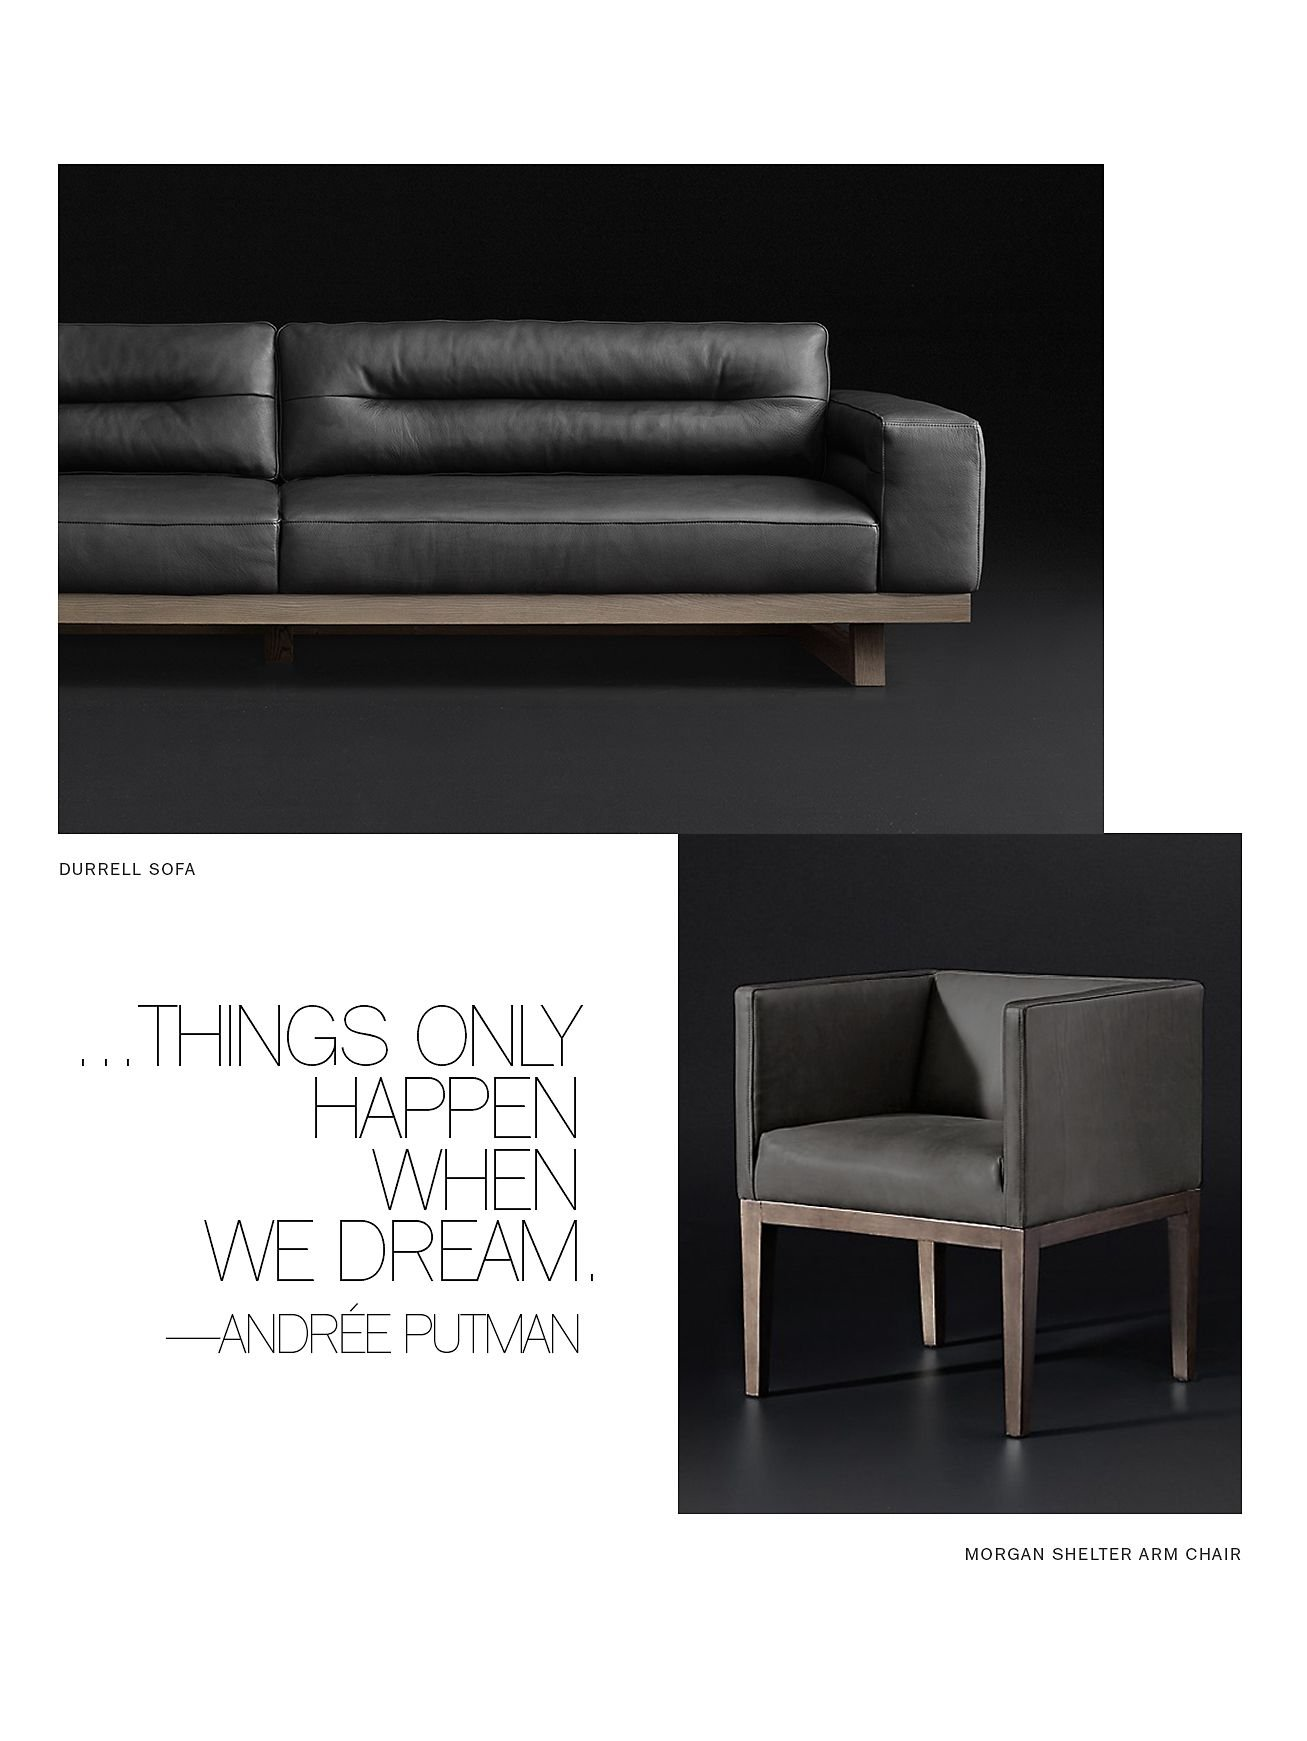 Restoration Hardware The Durrell Sofa Designed by Timothy Oulton